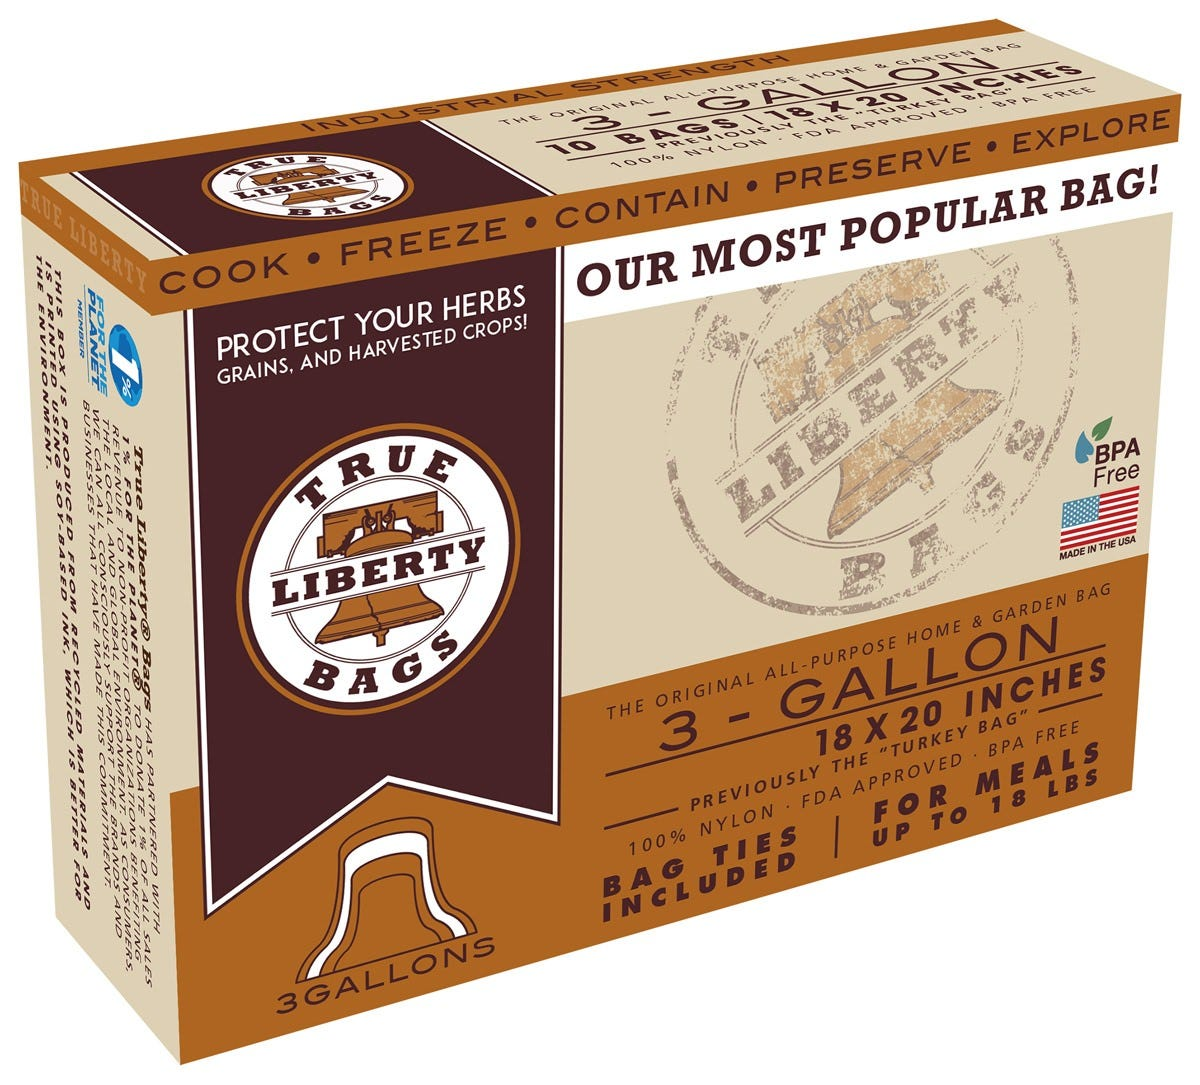 True Liberty 3 Gallon  Turkey  Bags 18 in x 20 in (25/pack) True Liberty® Bags are THE ORIGINAL All-Purpose Home & Garden bag. These bags are used by commercial organic farmers, food storage experts, and hobby growers to keep their foods fresh, healthy, and delicious. True Liberty® Bags are safe to use in your conventional oven, freezer, rice cooker, slow cooker, or stove top, as they are resistant to cold, heat, fat, grease, oil, and water. True Liberty® Bags have an excellent aroma barrier, which makes for a fantastically versatile, all-around home and garden bag.